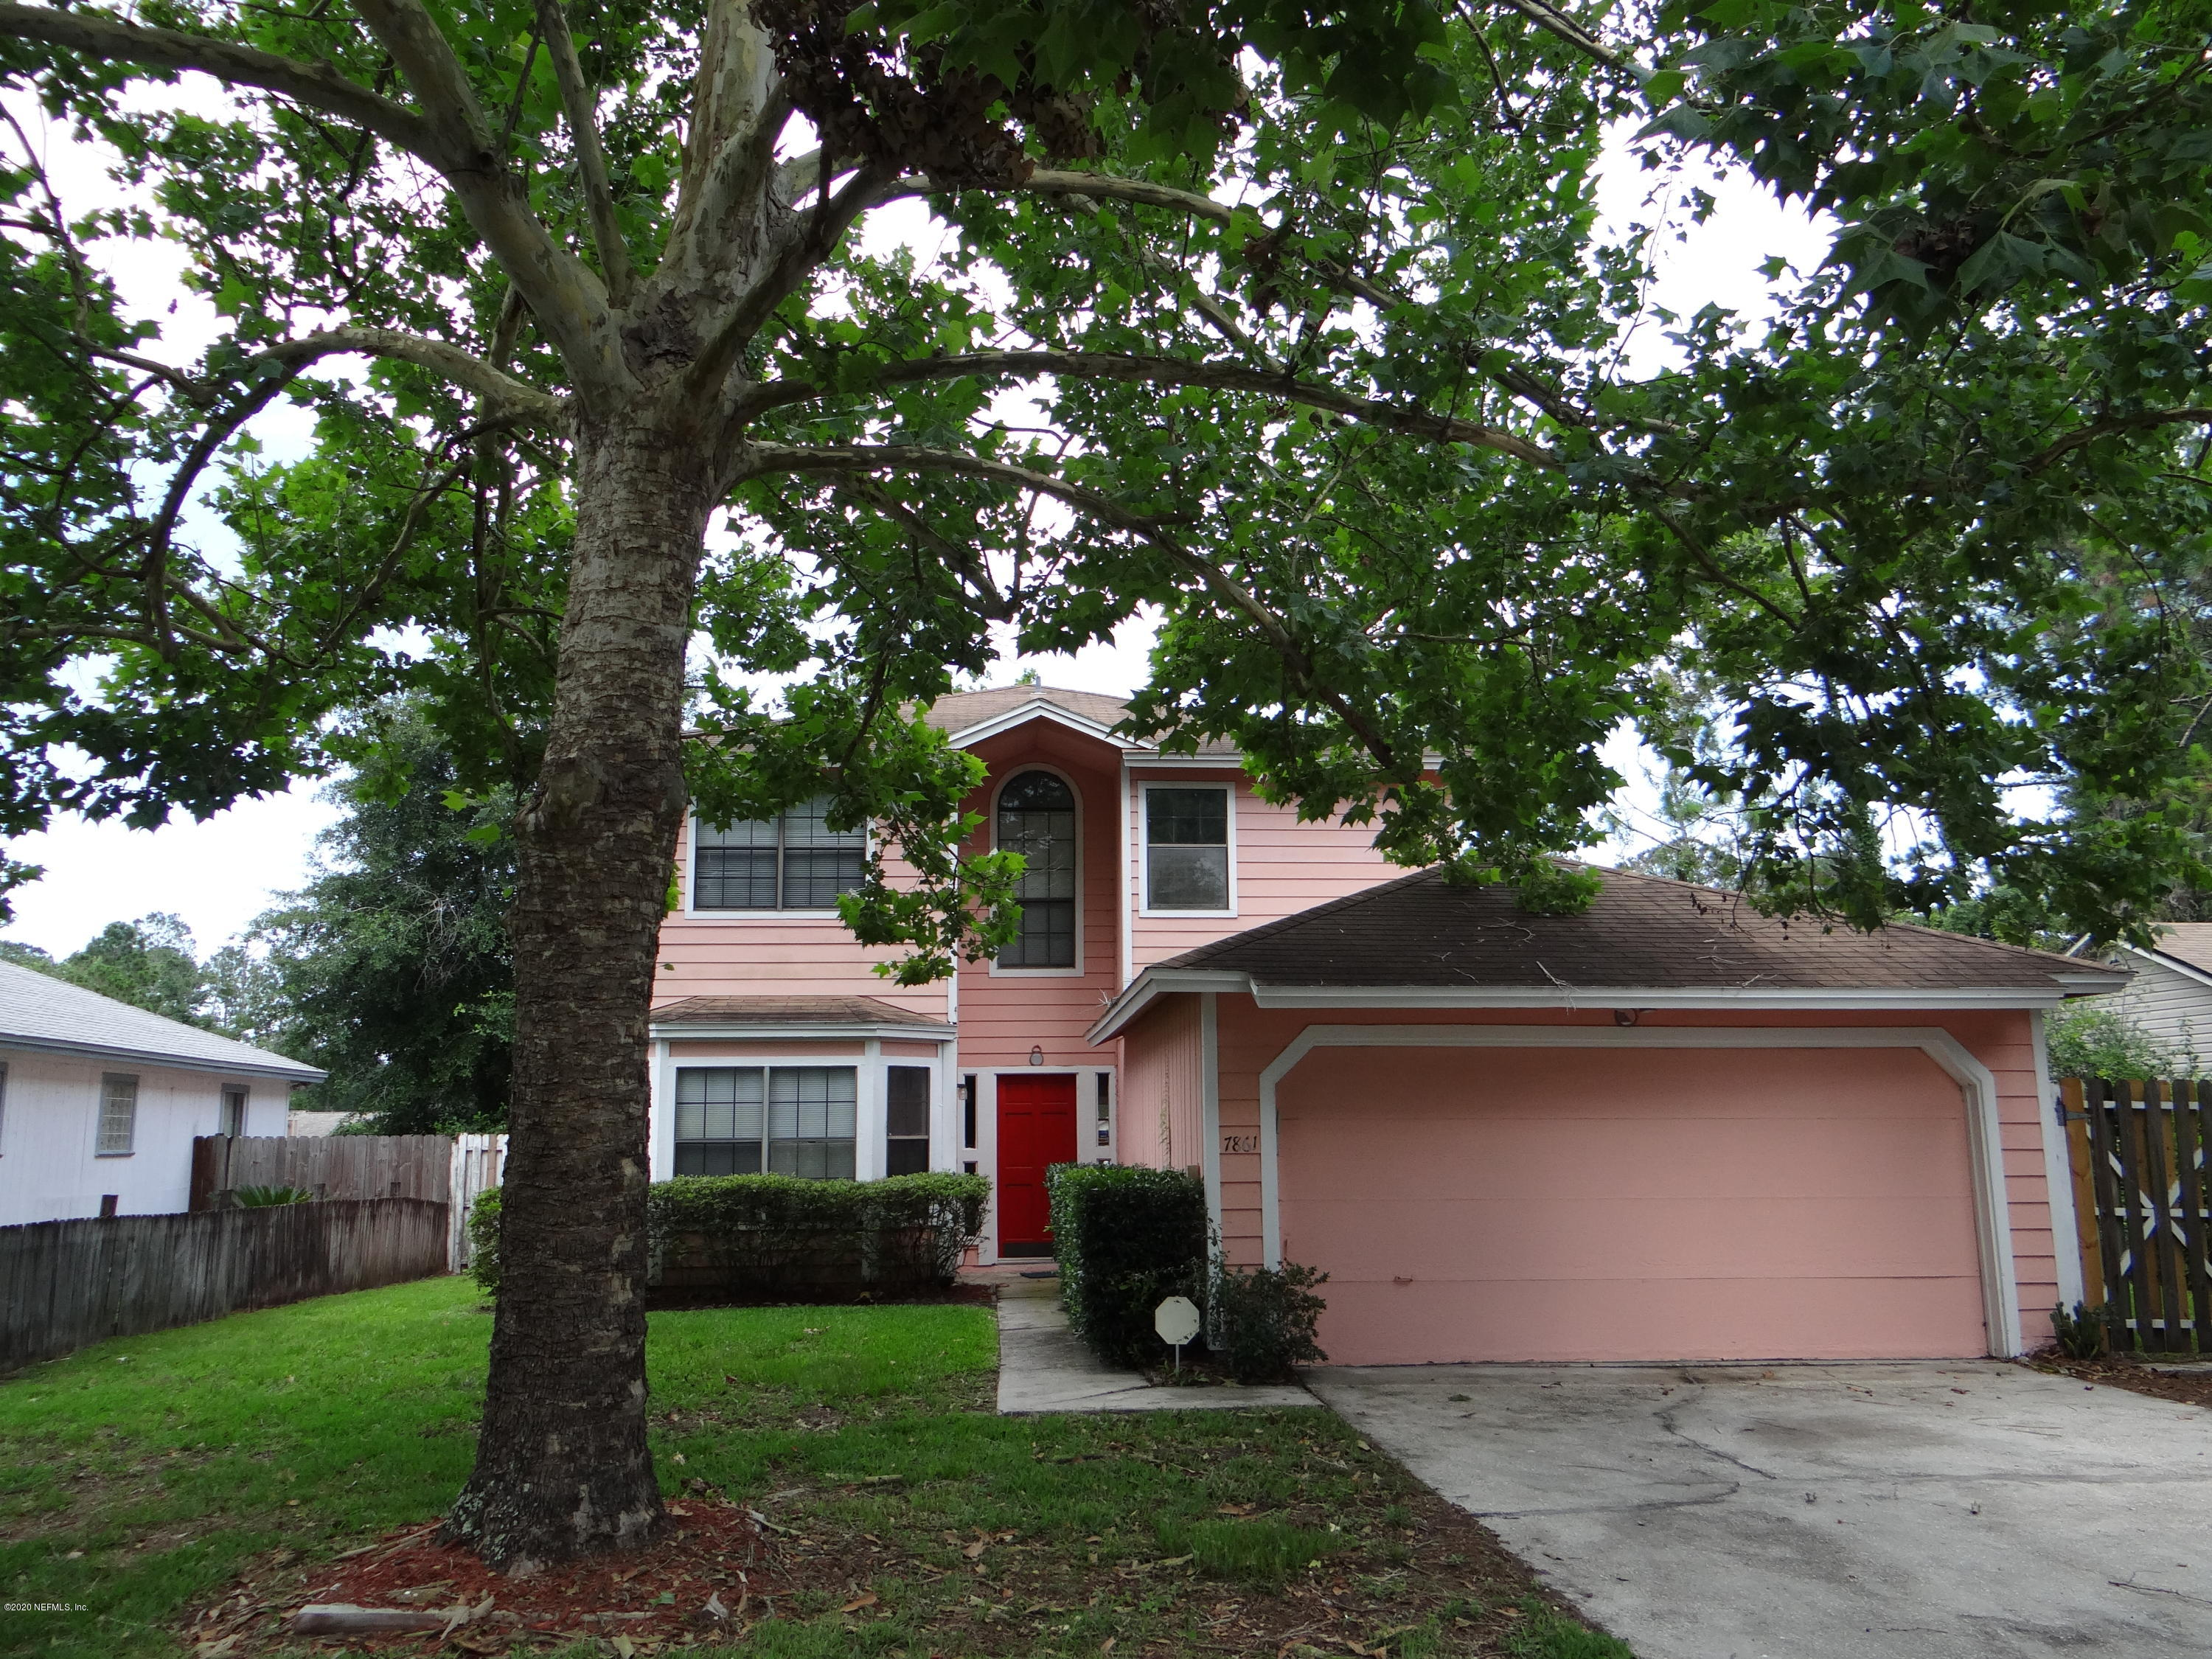 7861 PIKES PEAK, JACKSONVILLE, FLORIDA 32244, 3 Bedrooms Bedrooms, ,2 BathroomsBathrooms,Residential,For sale,PIKES PEAK,1058124